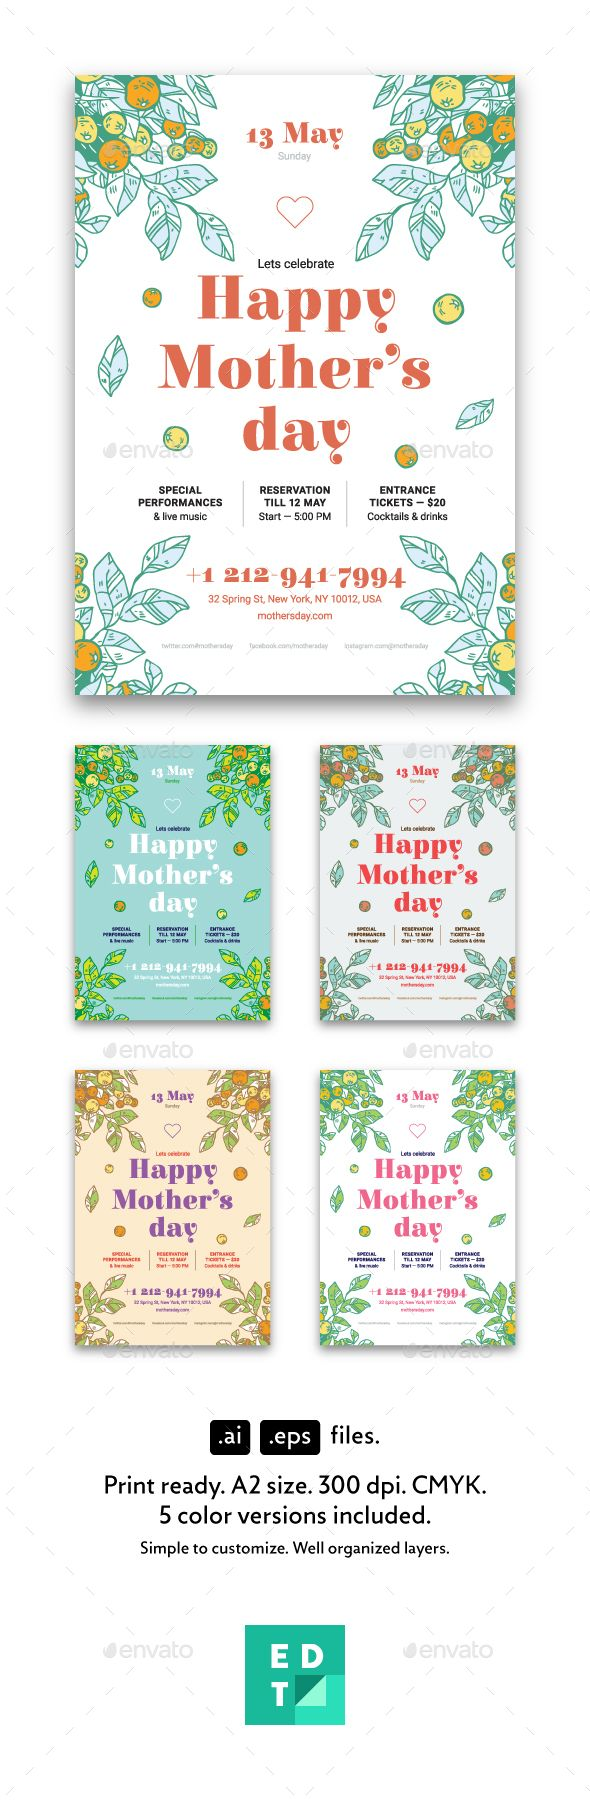 Mother's Day Poster Template Vector EPS, AI Illustrator